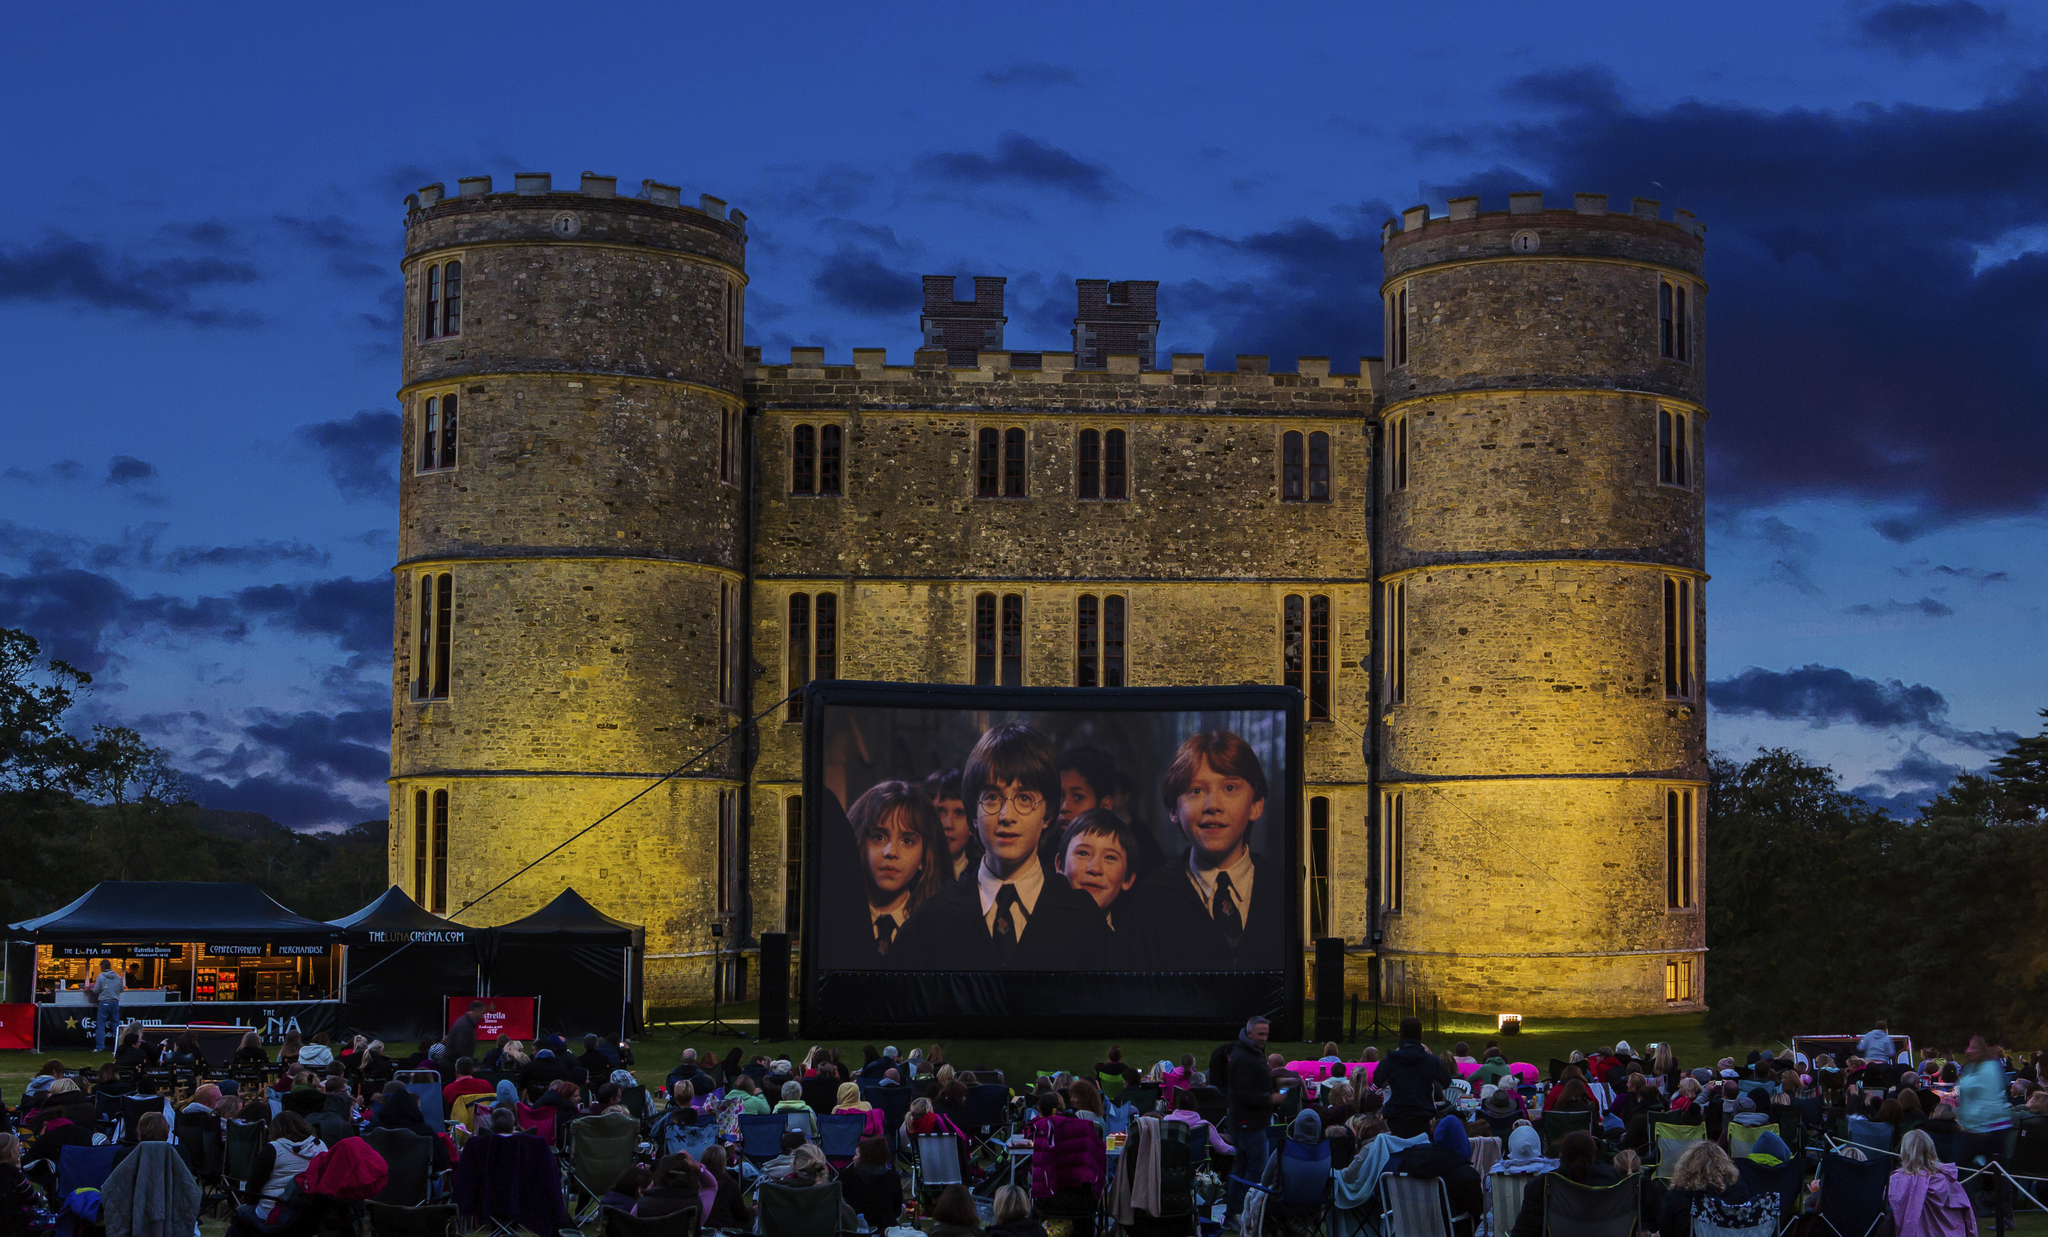 Lulworth Castle to host outdoor cinema experience